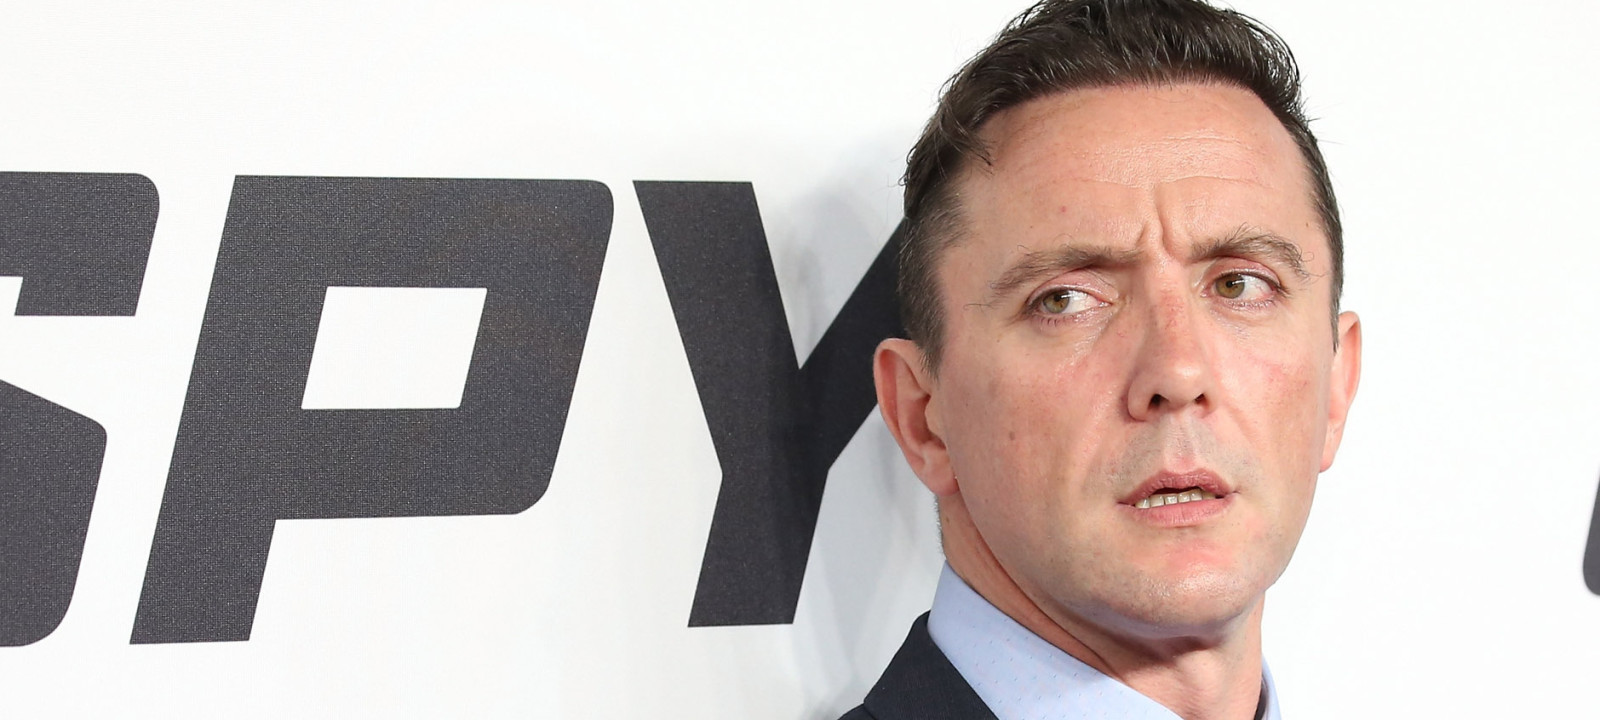 Actor Peter Serafinowicz attends the 'Spy' New York Premiere at AMC Loews Lincoln Square on June 1, 2015 in New York City.